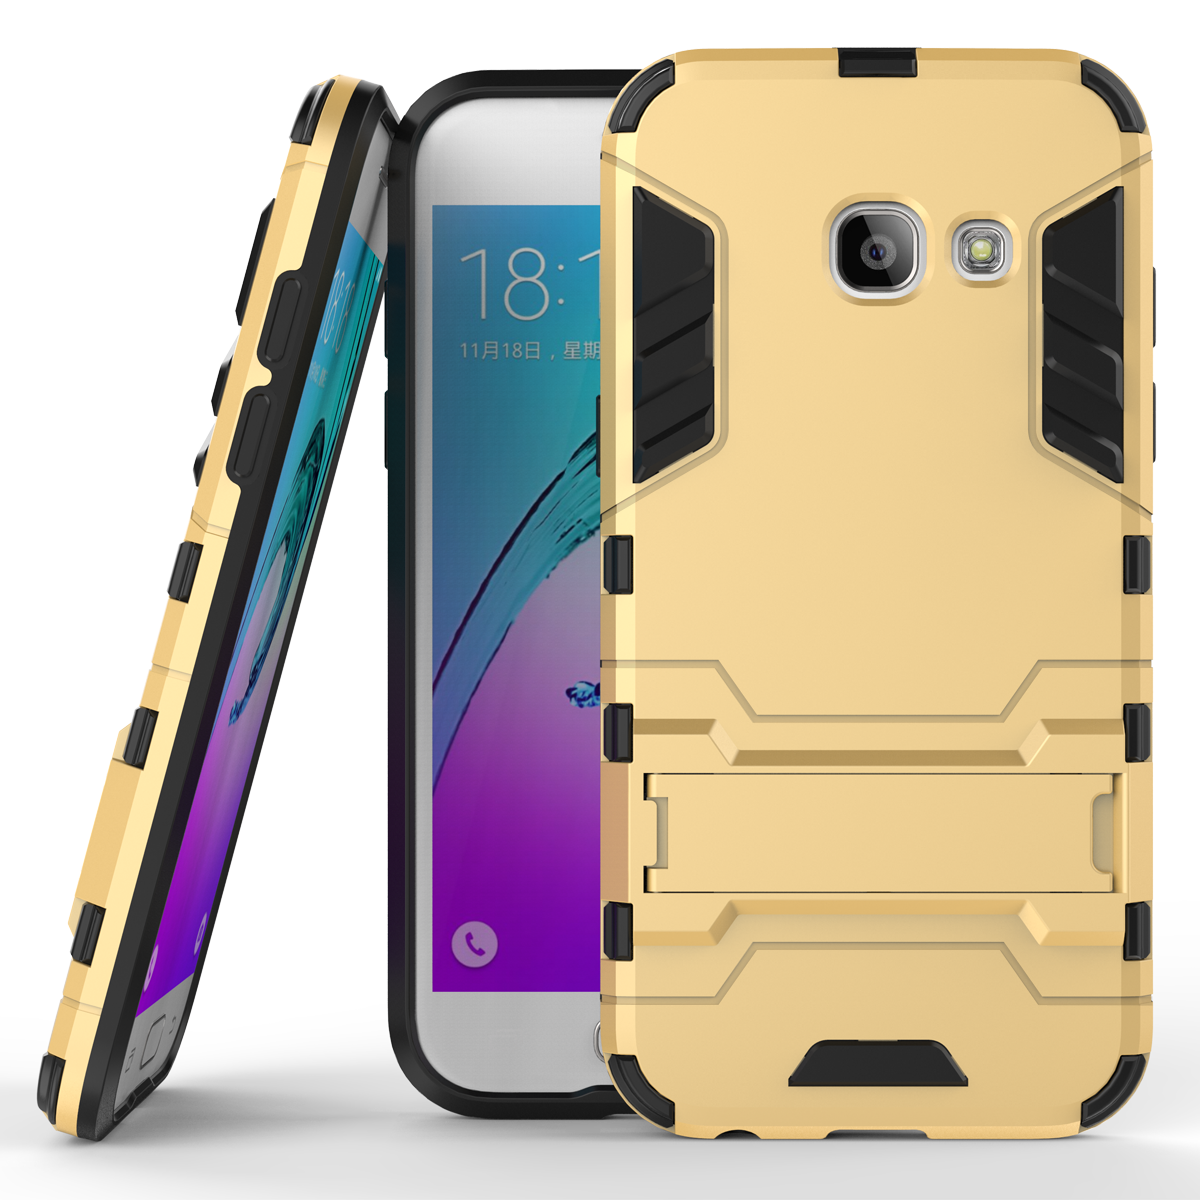 D armor kickstand protective phone cover case for samsung galaxy a3 2017 gold p20161229135854406